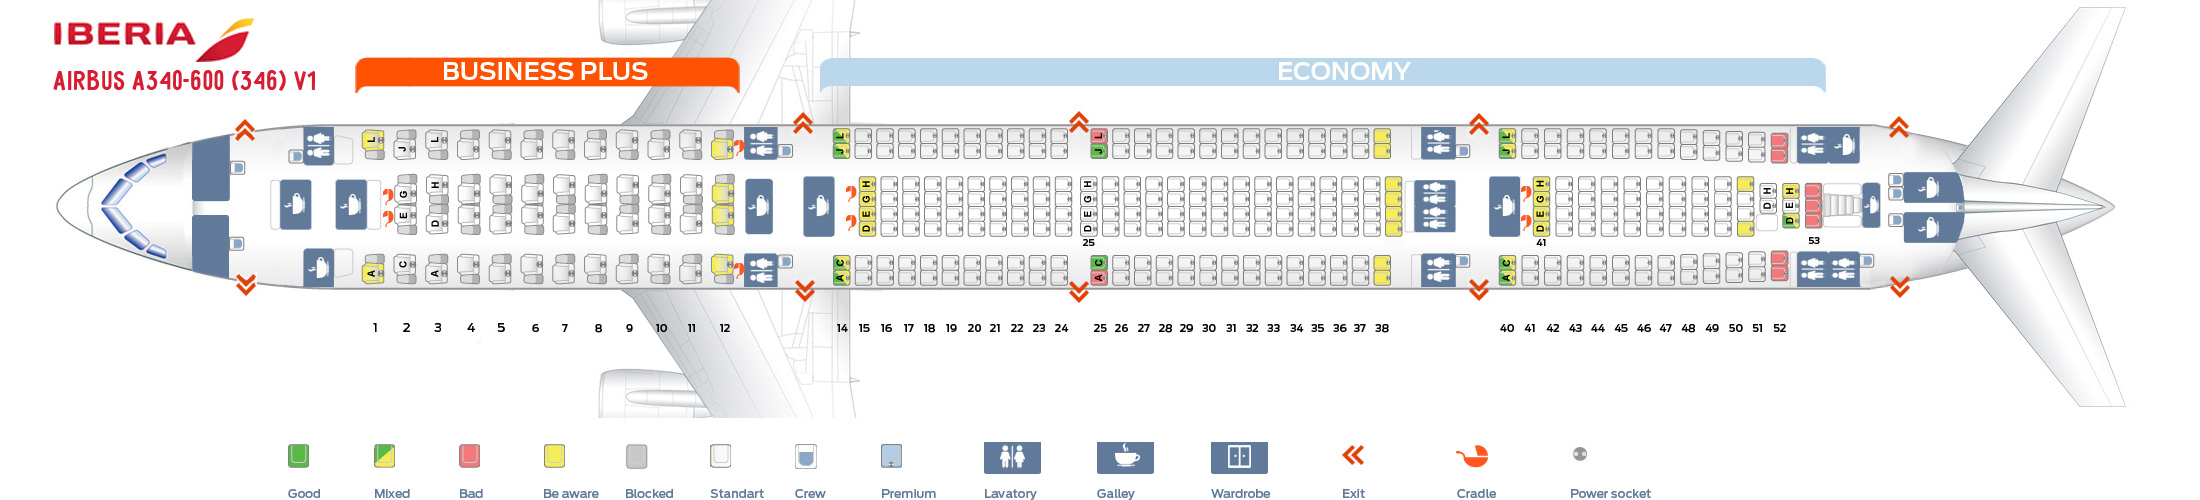 Seat Map Airbus A340-600 V1 Iberia